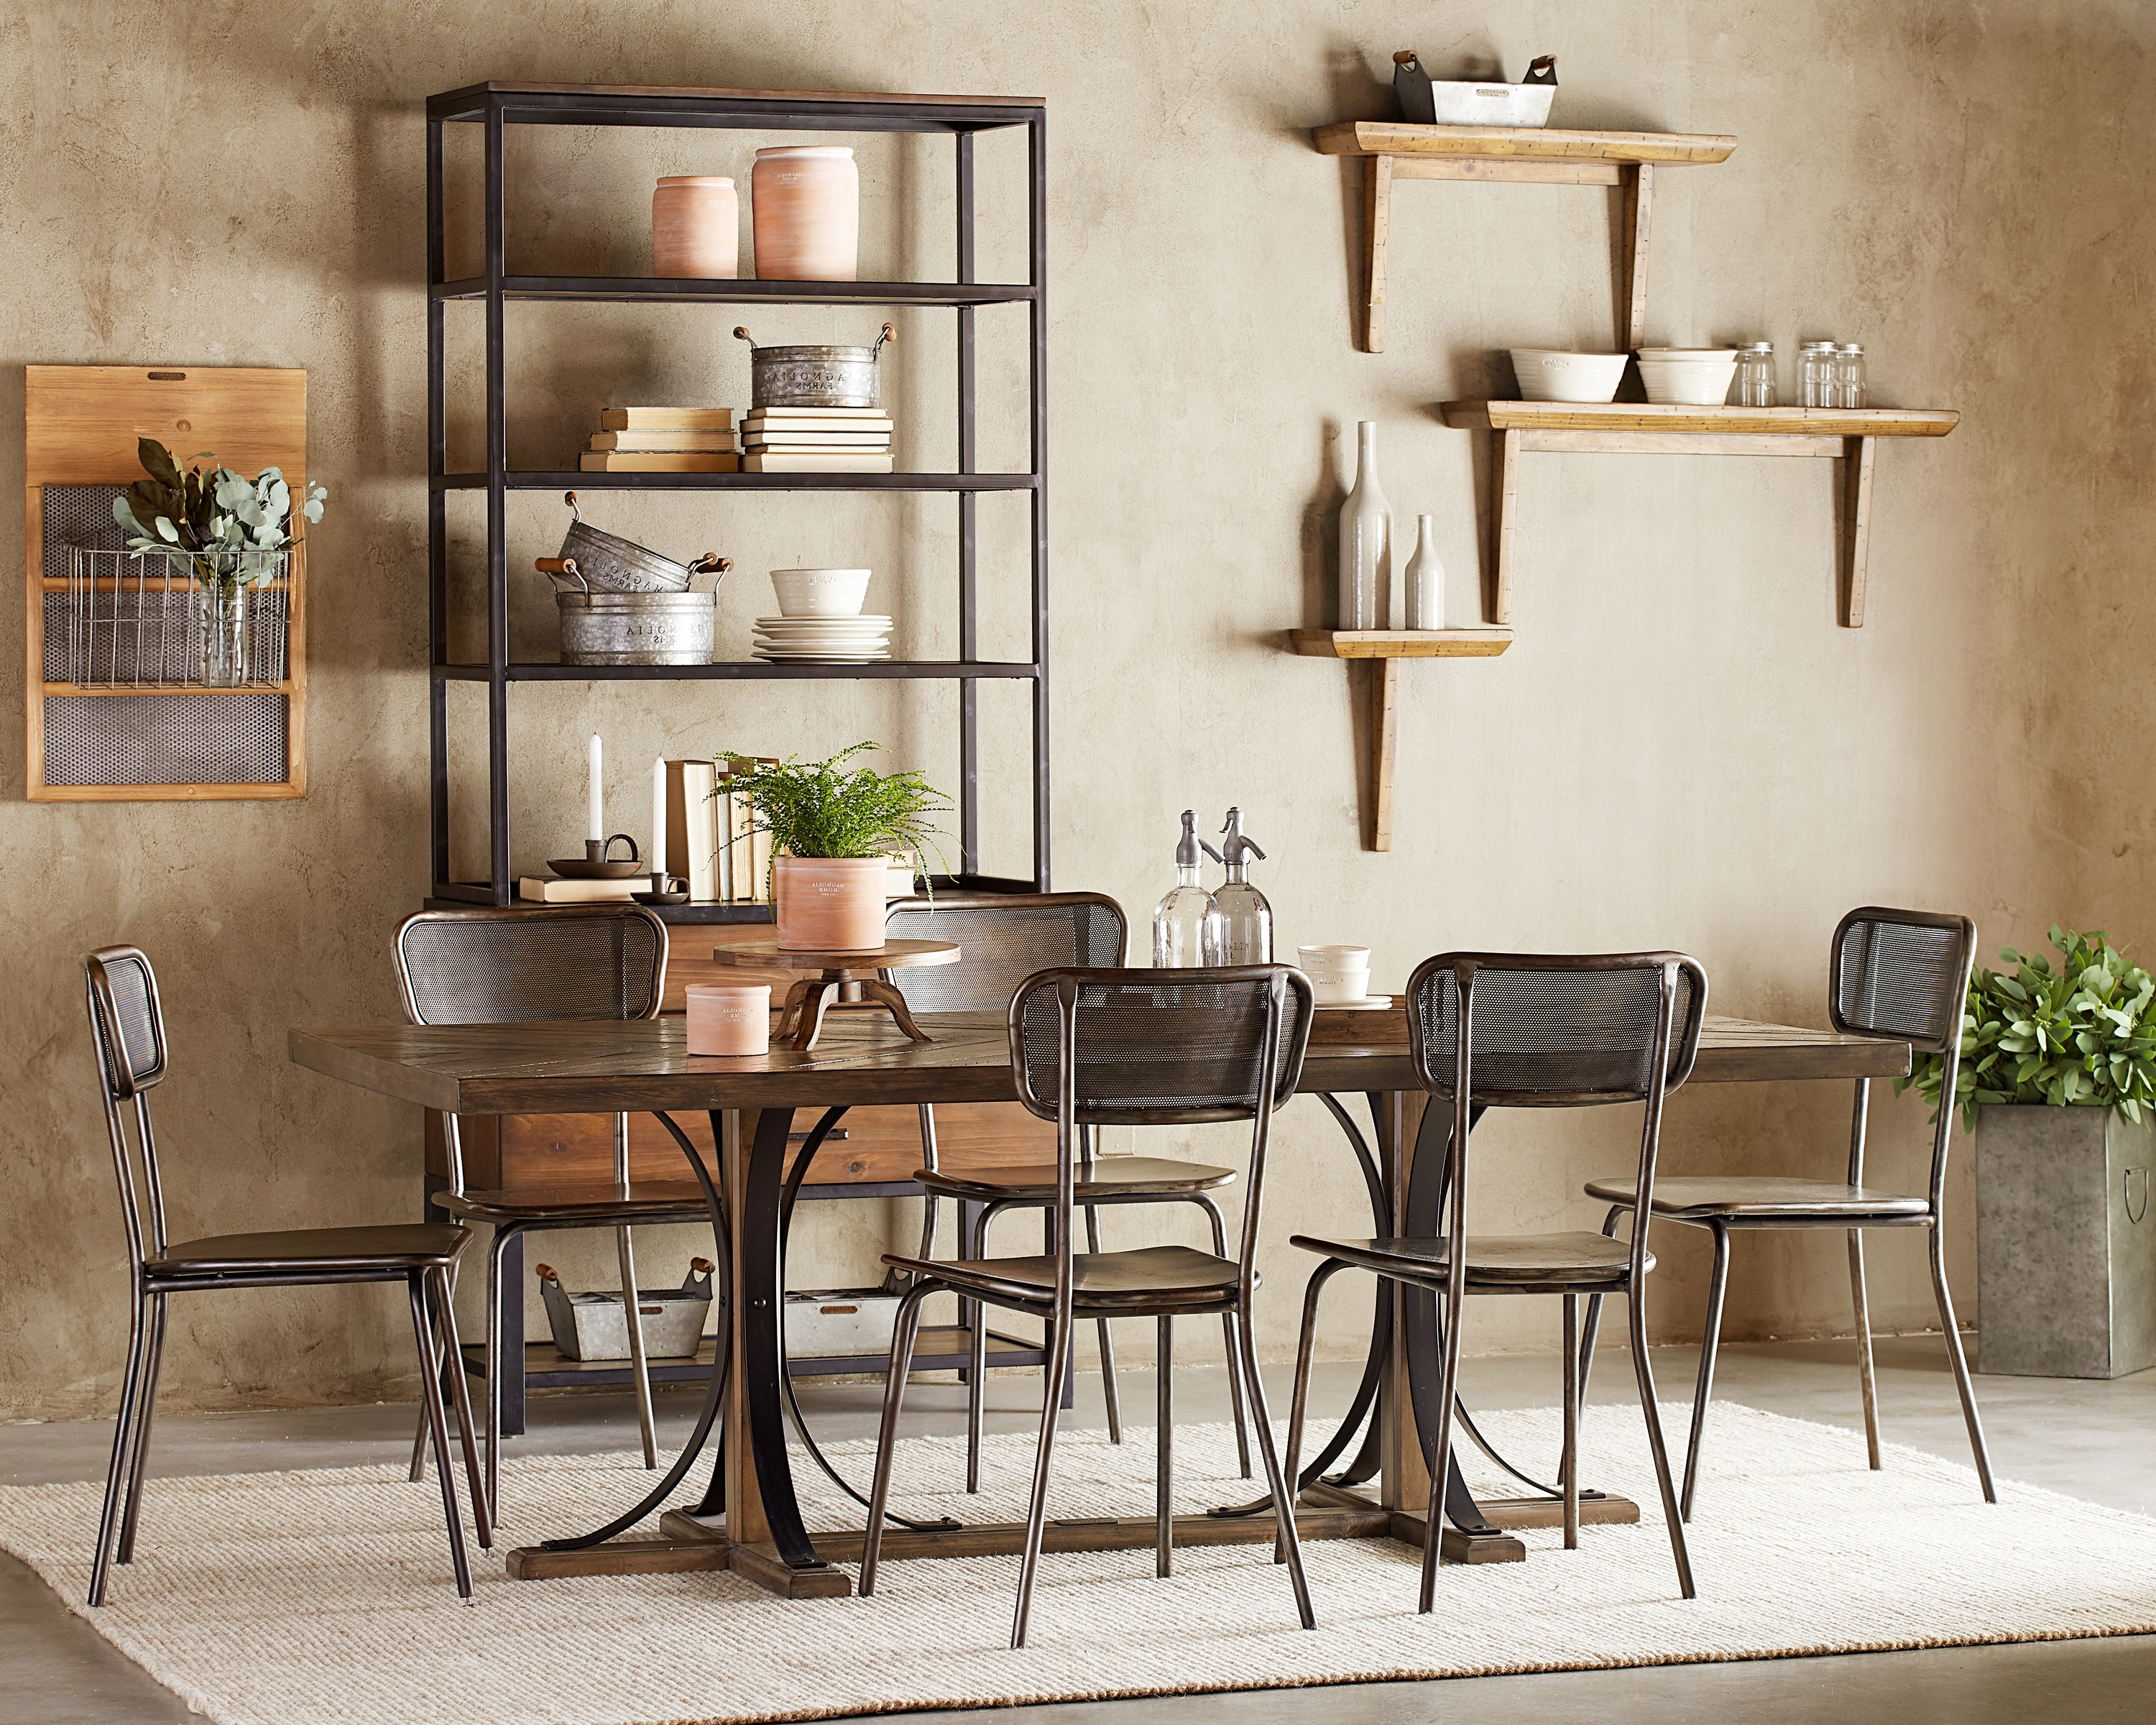 Iron Trestle Dining Table – Magnolia Home For Widely Used Magnolia Home Iron Trestle Cocktail Tables (View 7 of 20)